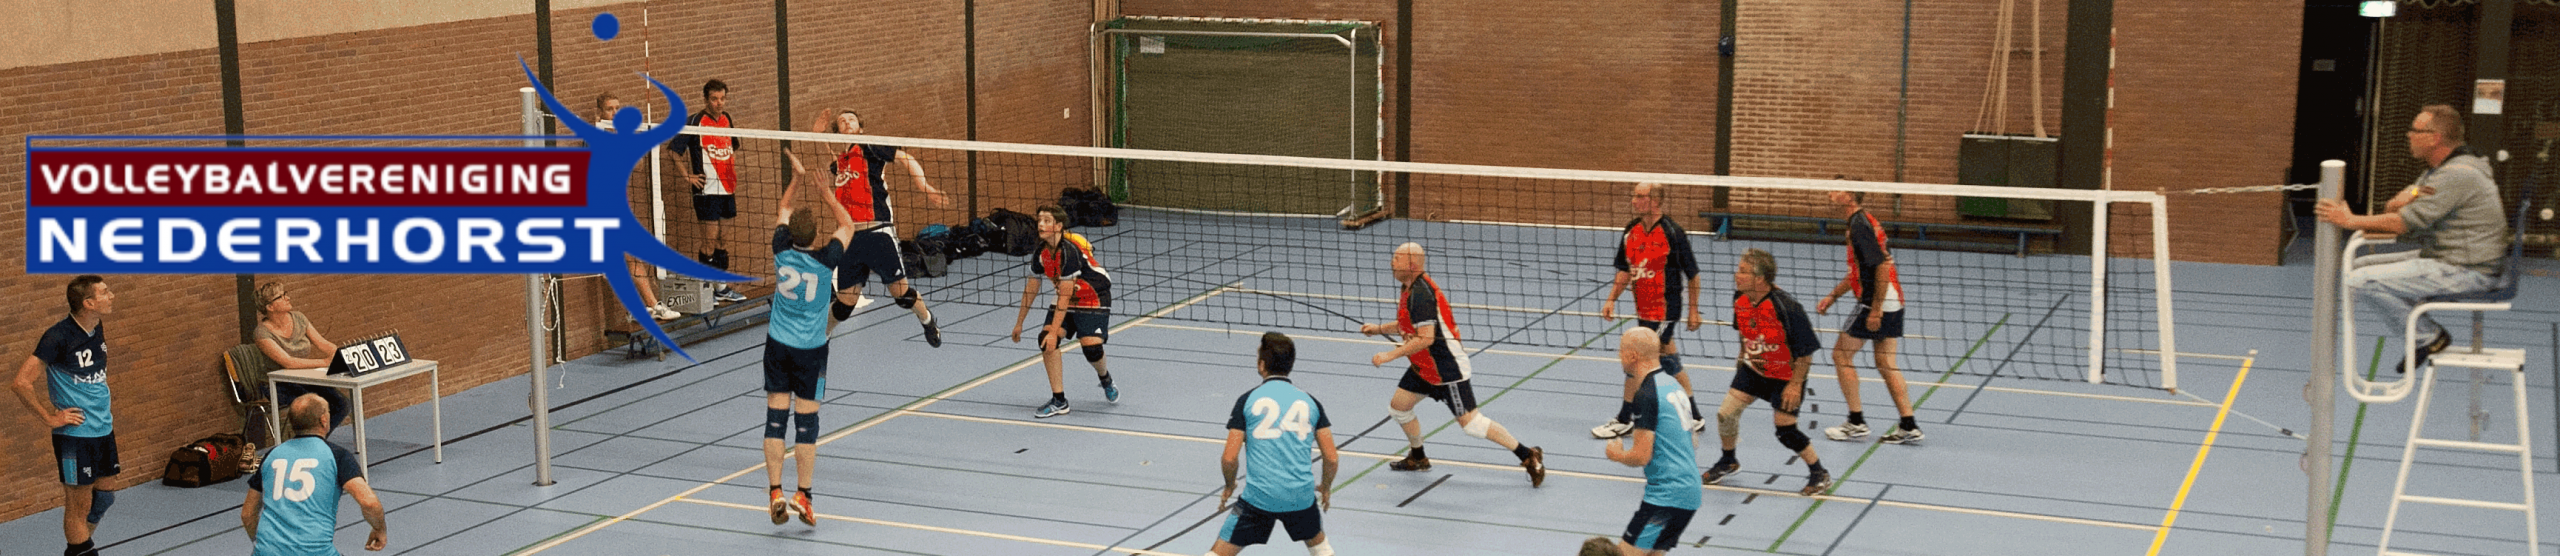 Volleybal Vereniging Nederhorst